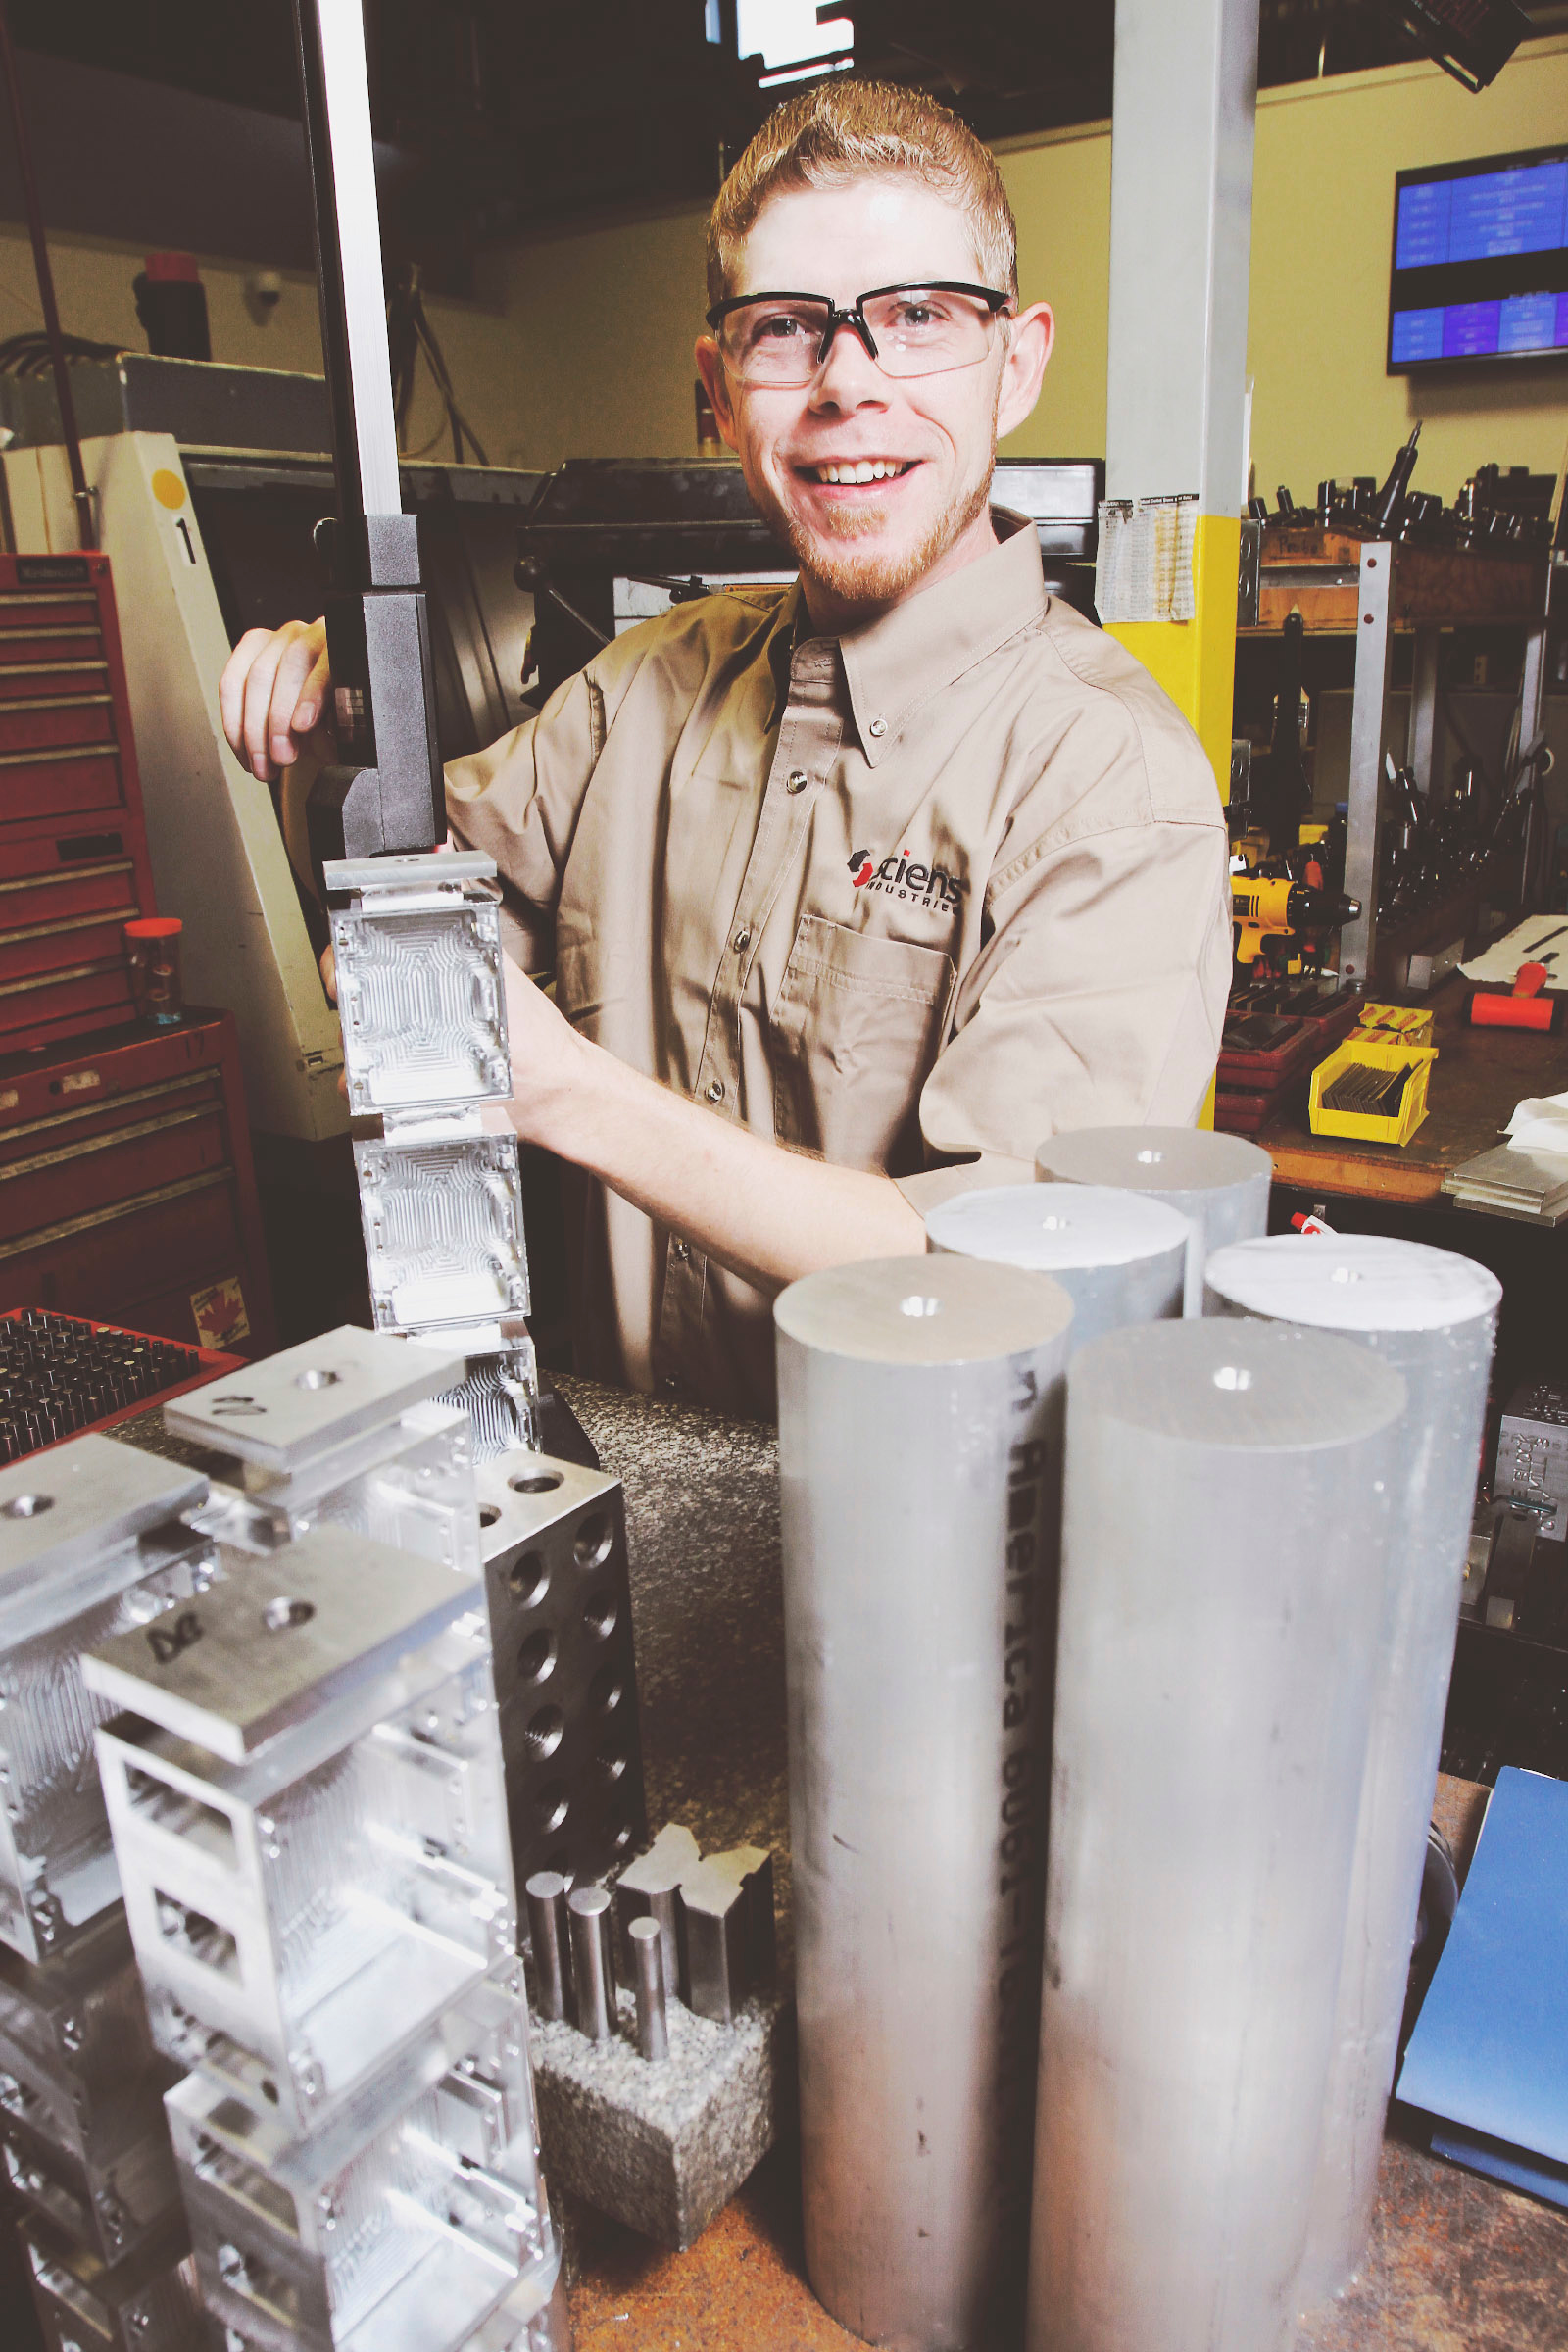 A machinist works on a piece of equipment in a workshop. He pauses in his work and smiles at the camera.